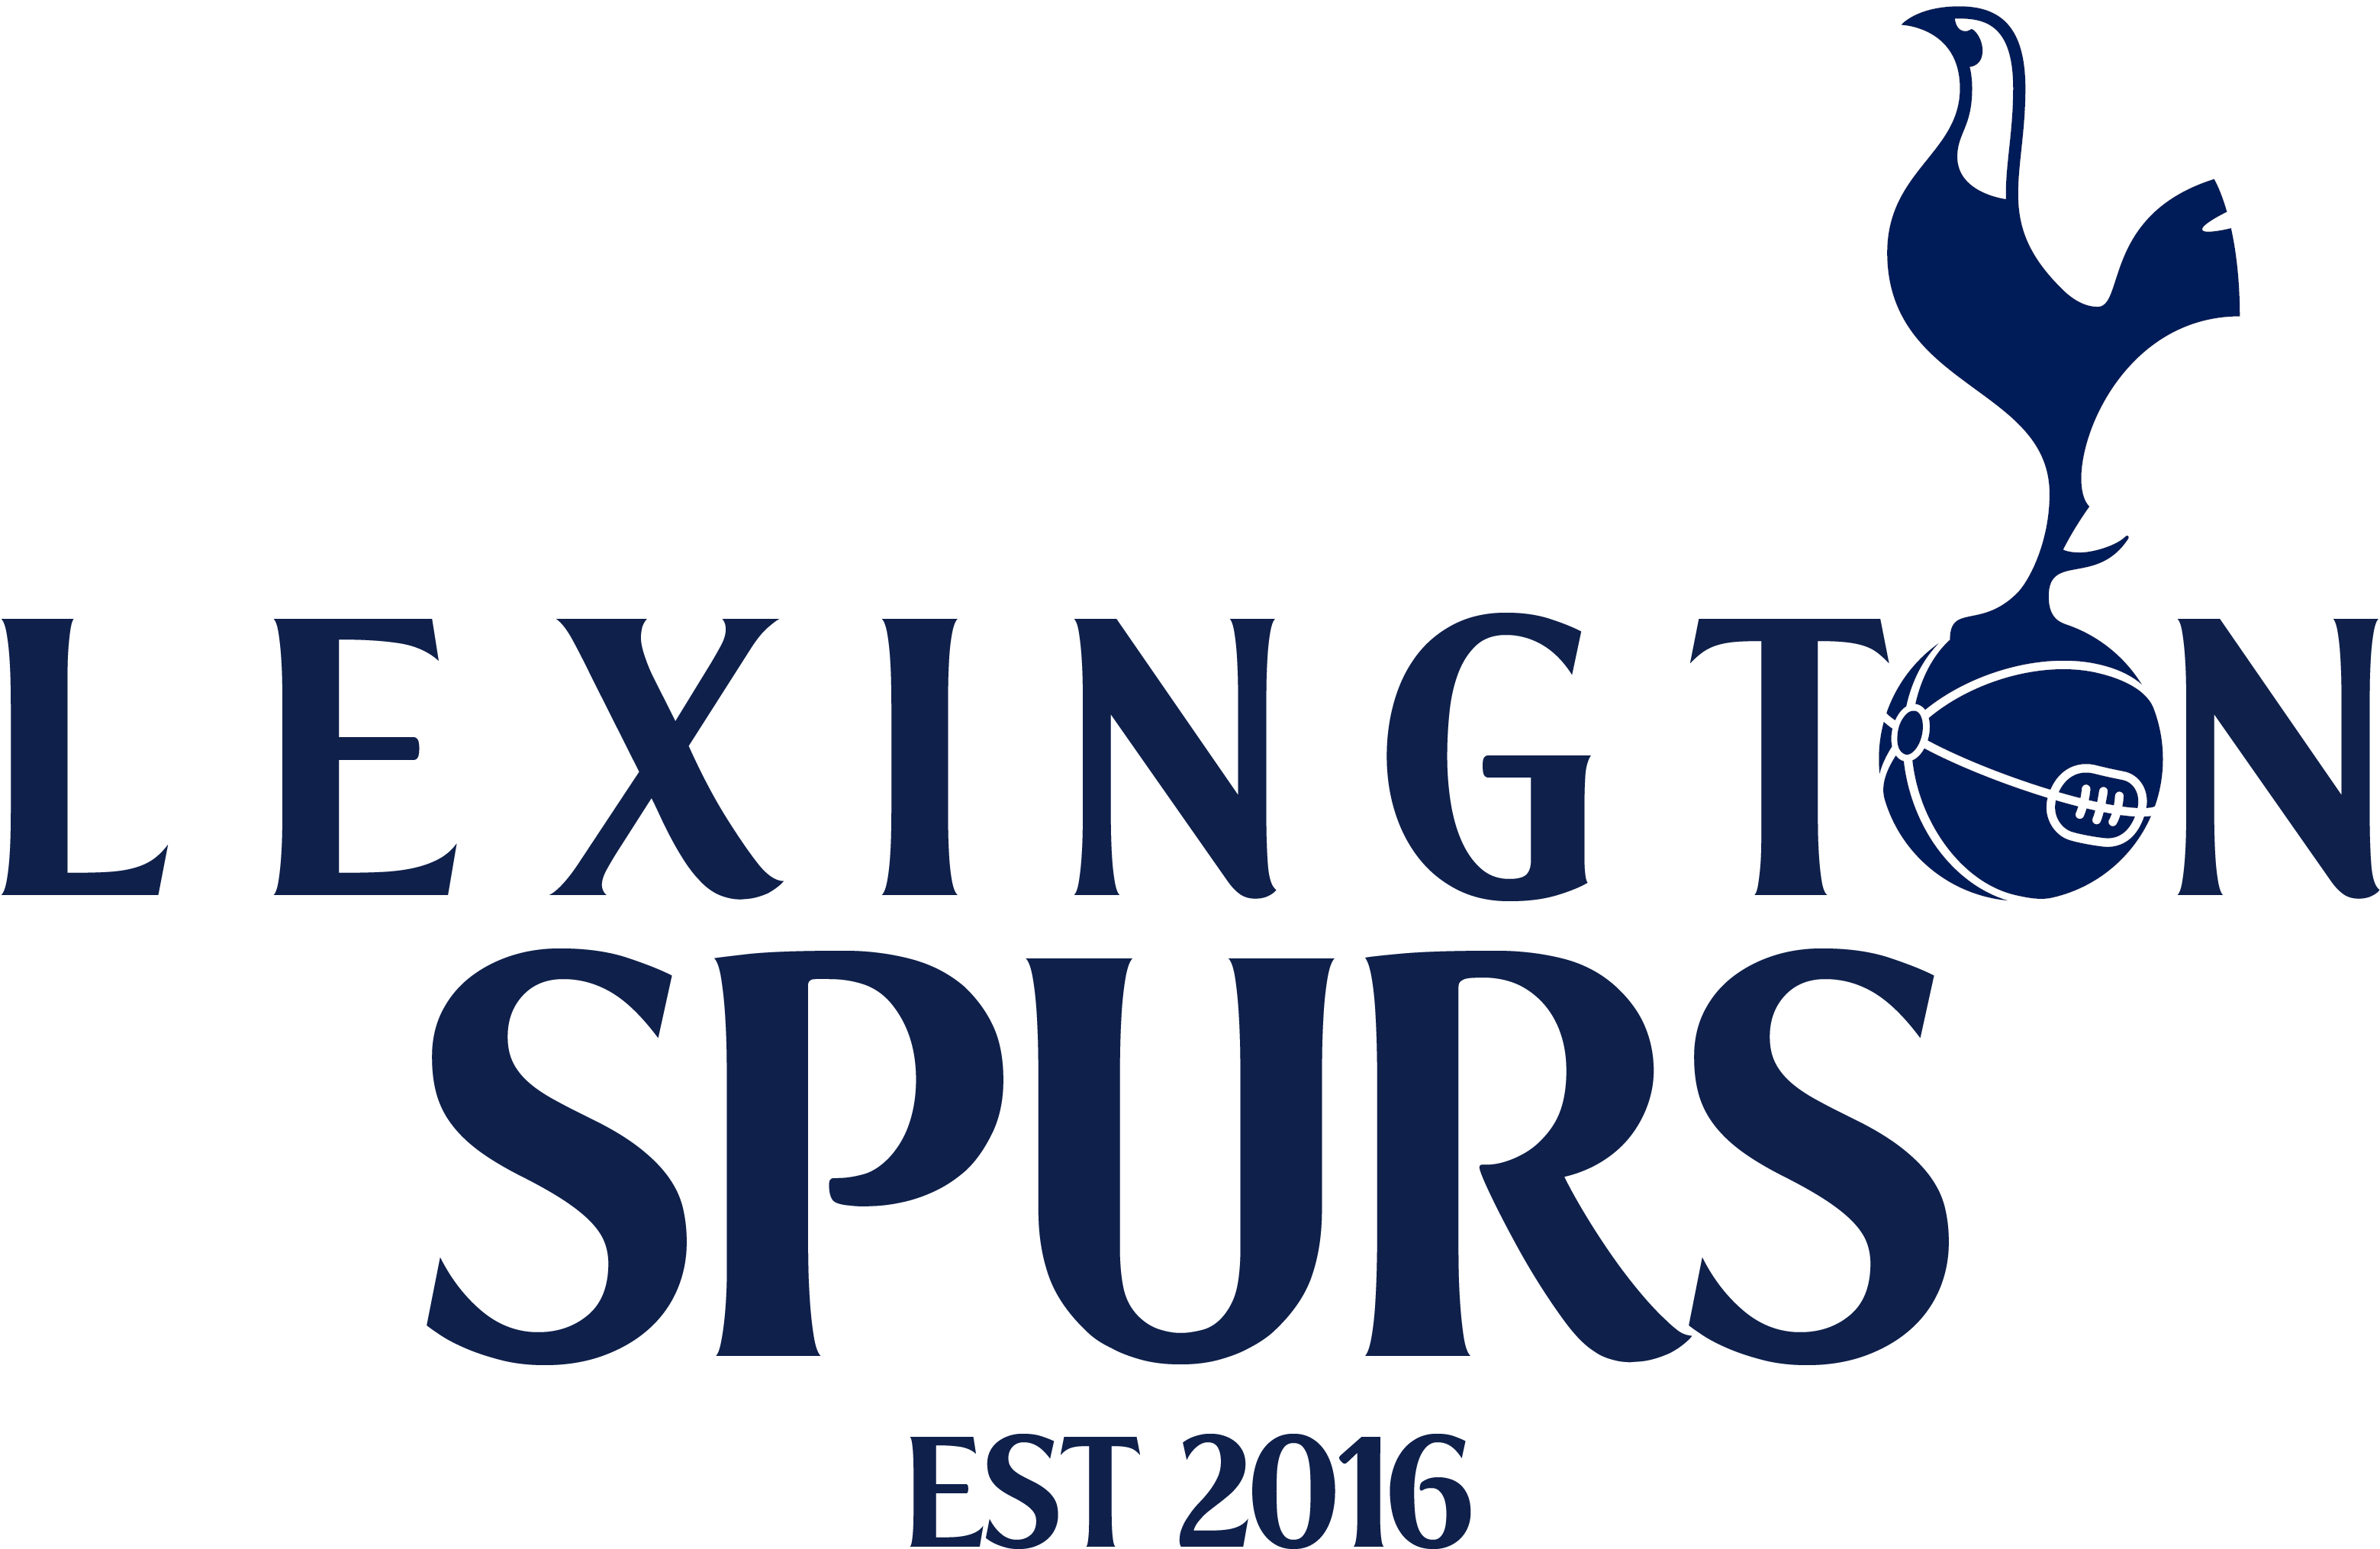 Download Tottenham Hotspur Fans Png Image With No Background Pngkey Com